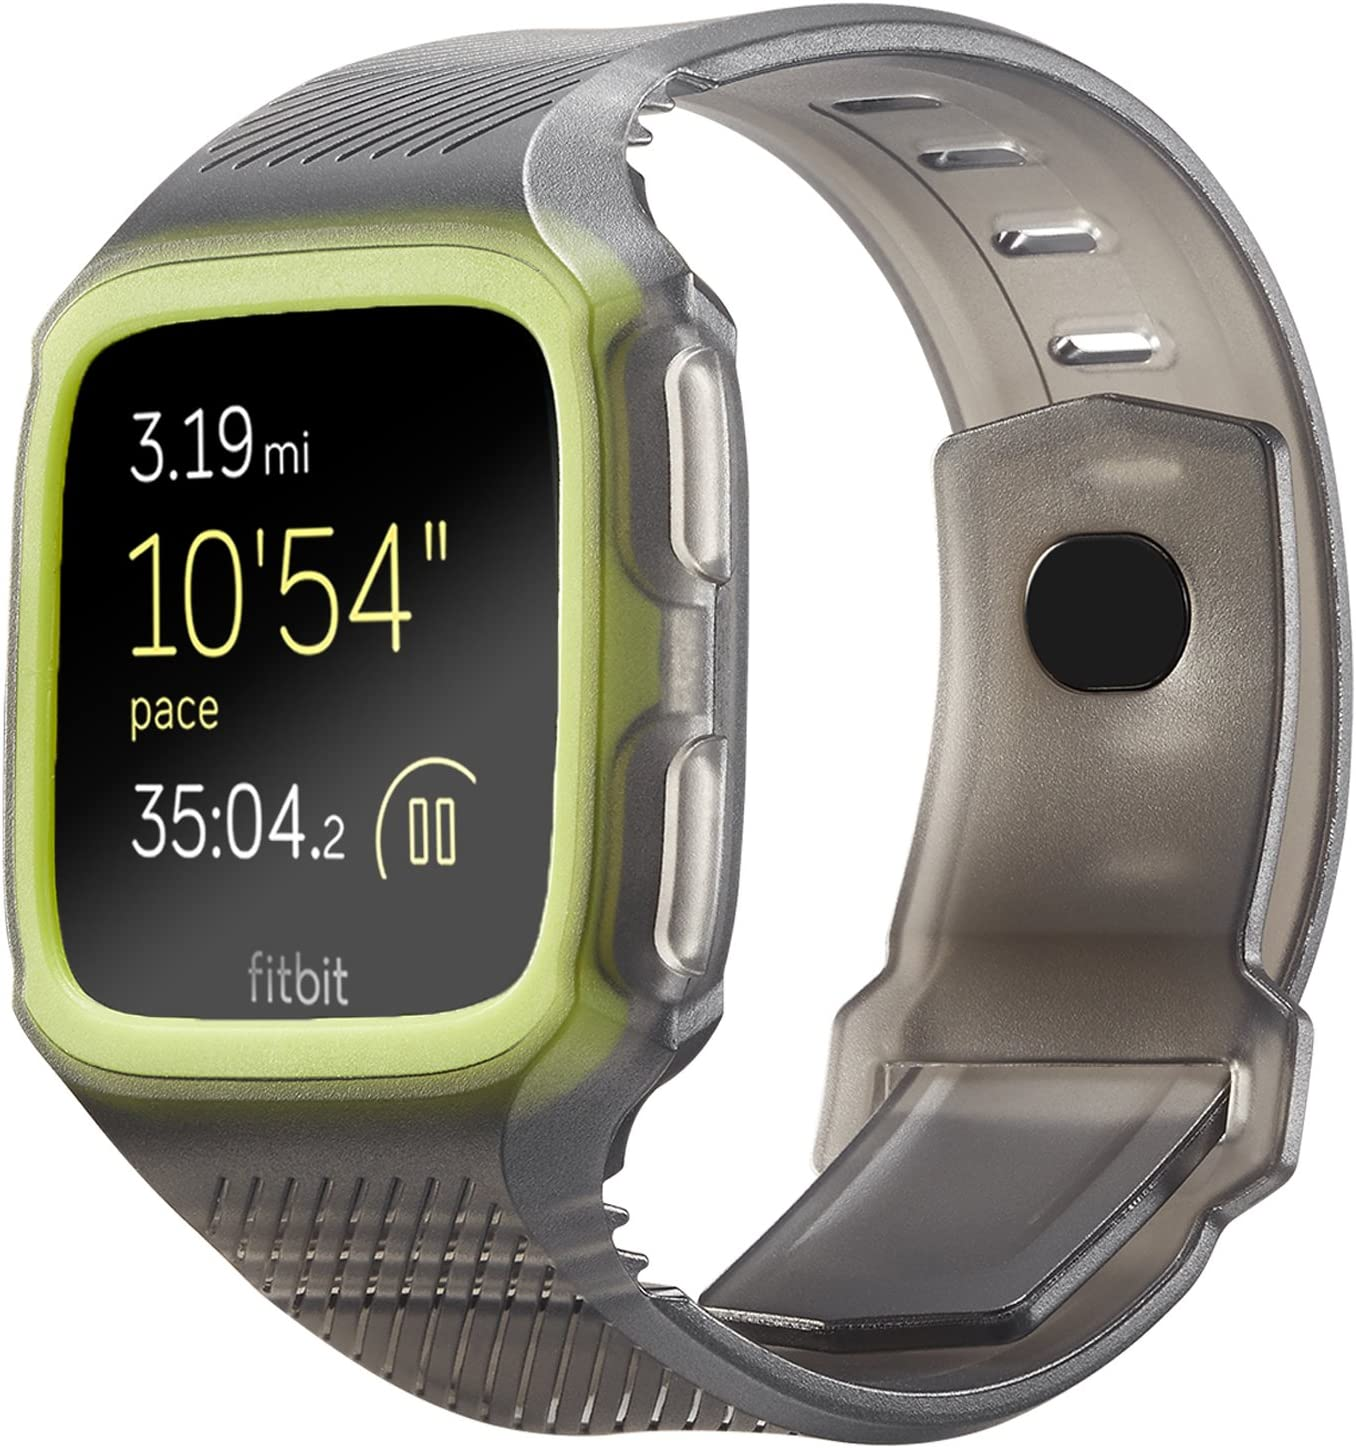 Shangpule Fitbit Versa Bands, Silicone Versa Rugged Wristband with Protective Case Frame, Anti-Impact Replacement Bands Quick Release Watch Bands Strap for Fitbit Versa (Translucent+ Green)